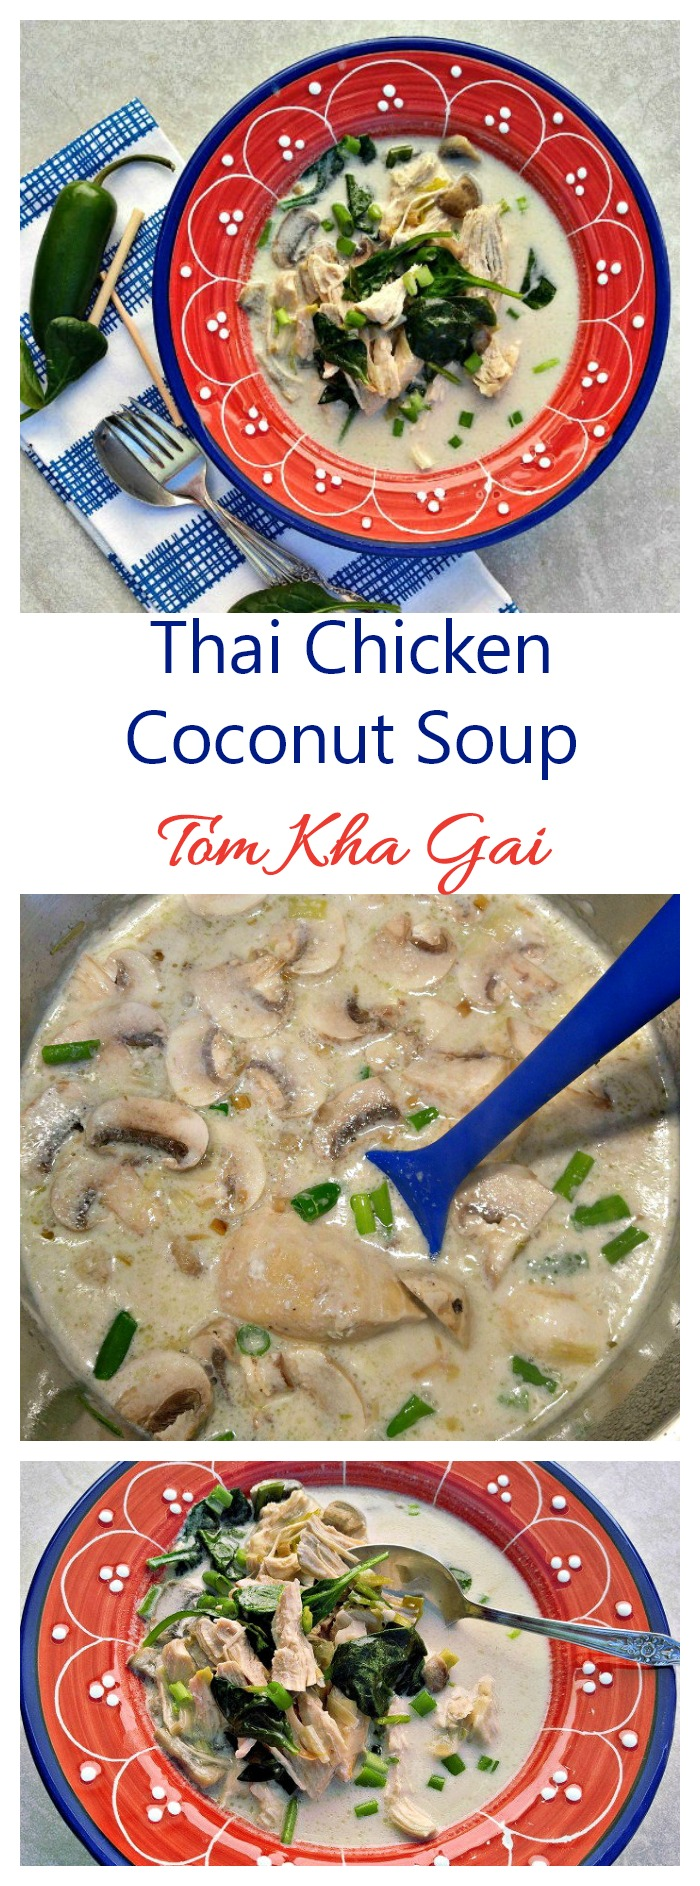 This Thai Chicken Coconut Soup is sweet, salty, sour and spicy, all in one spoonful. It is also known as tom kha gai. #tomkhagai #thaisouprecipe